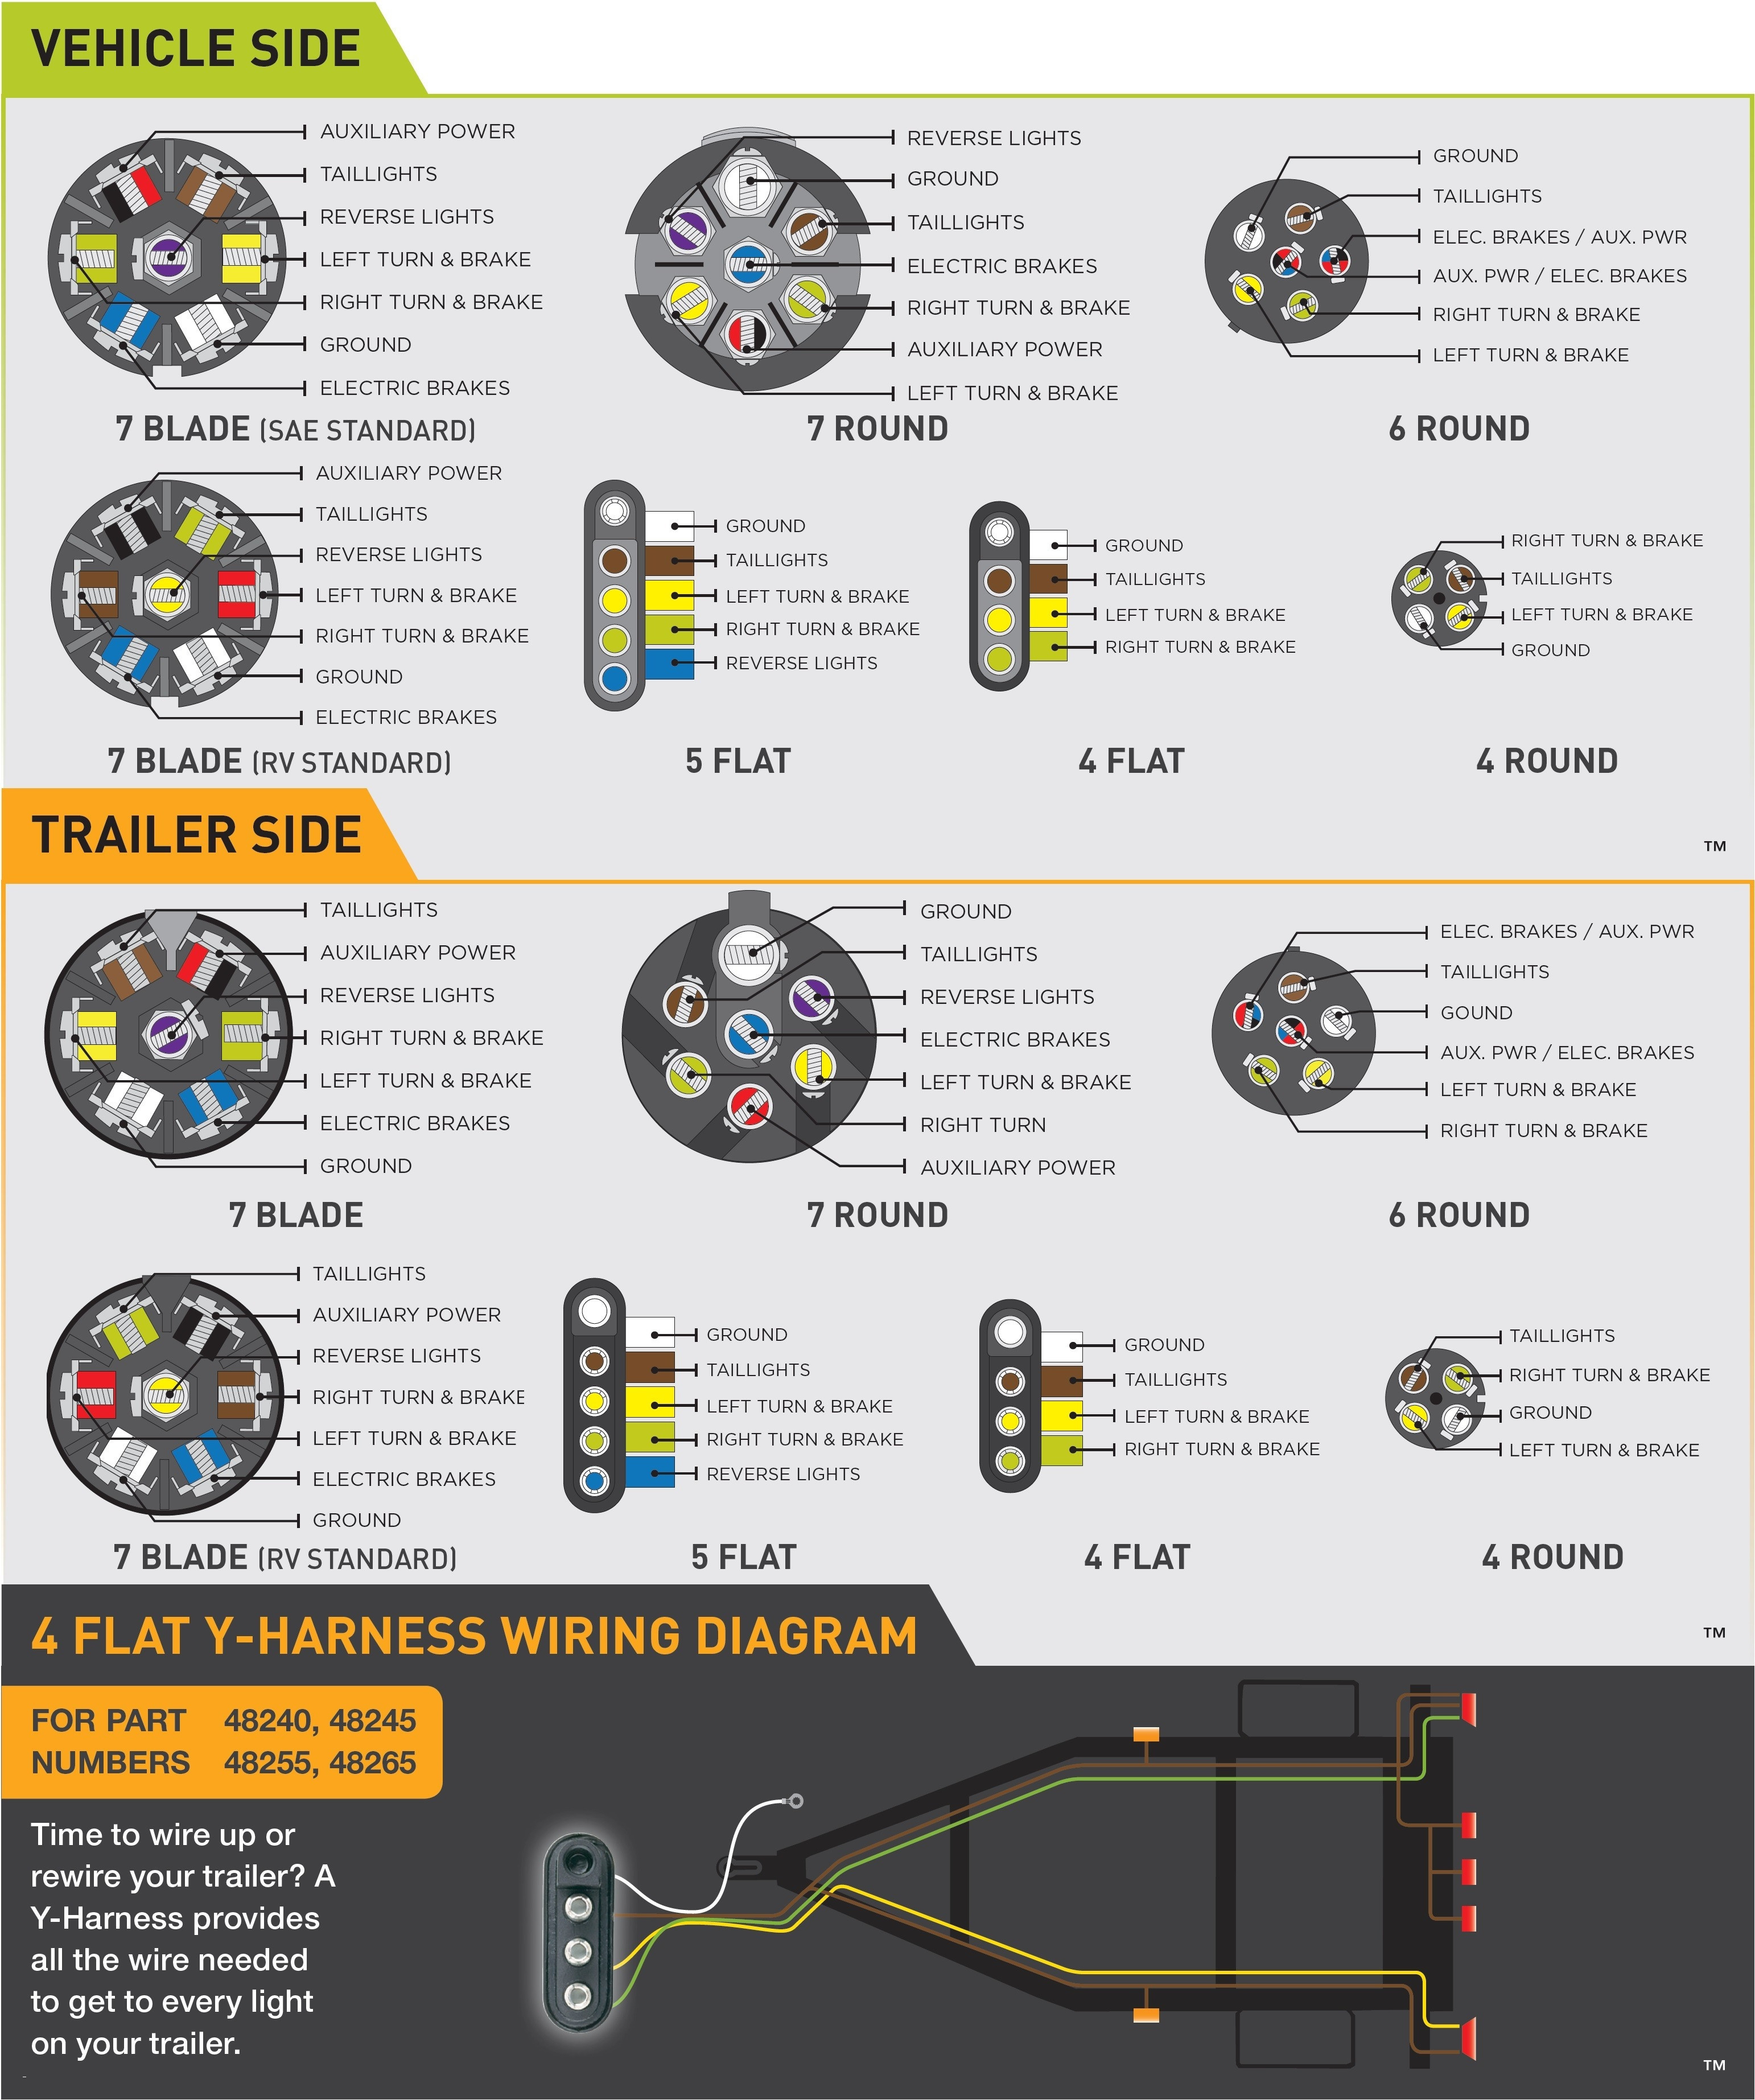 Trailer Electrical Connector Wiring Diagram Rate Wiring Diagram For - 4 Wire Trailer Light Wiring Diagram